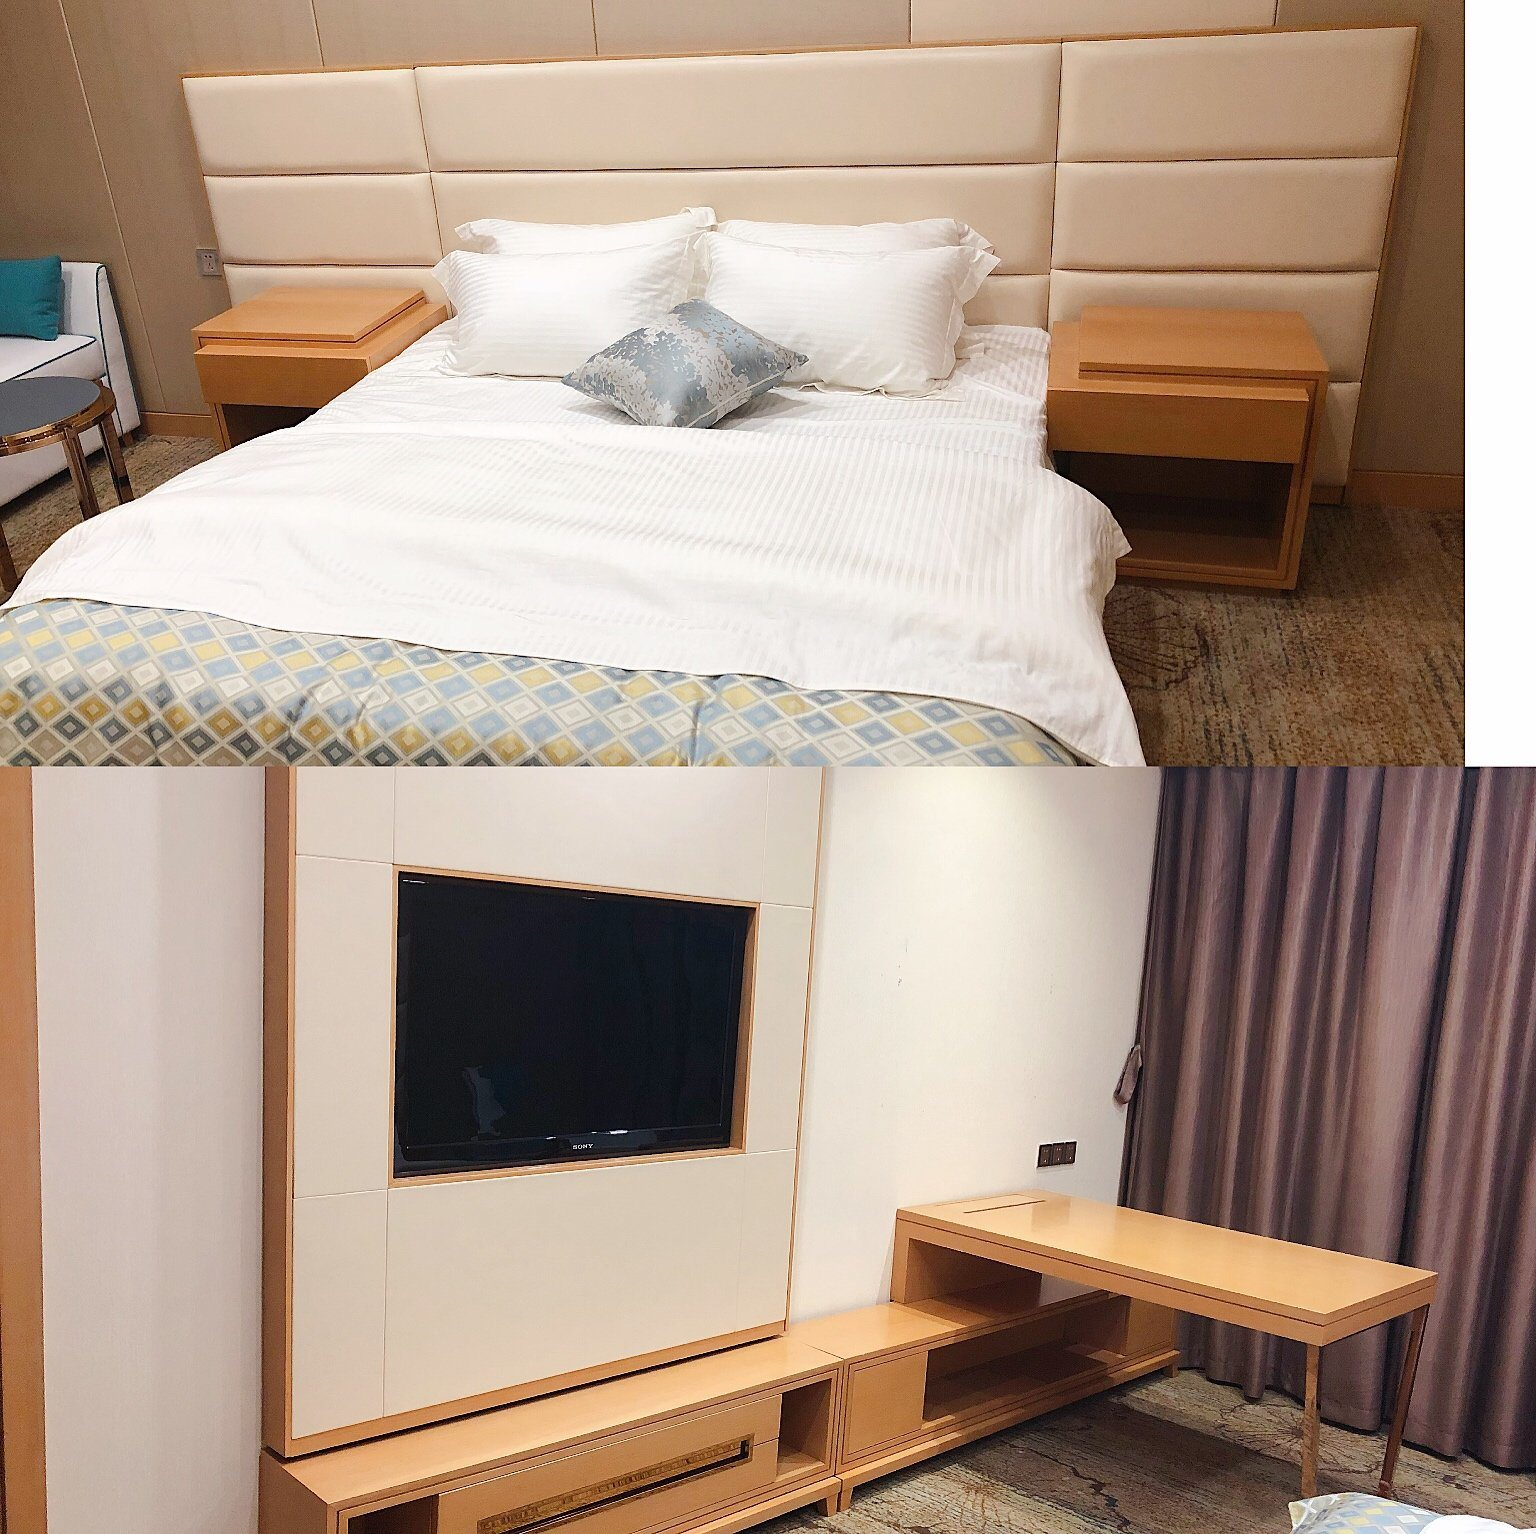 Hot Item Custom Made Contemporary Wooden King Size Hotel Bedroom Sets For Hospitality Contract Furniture Hbb 0166